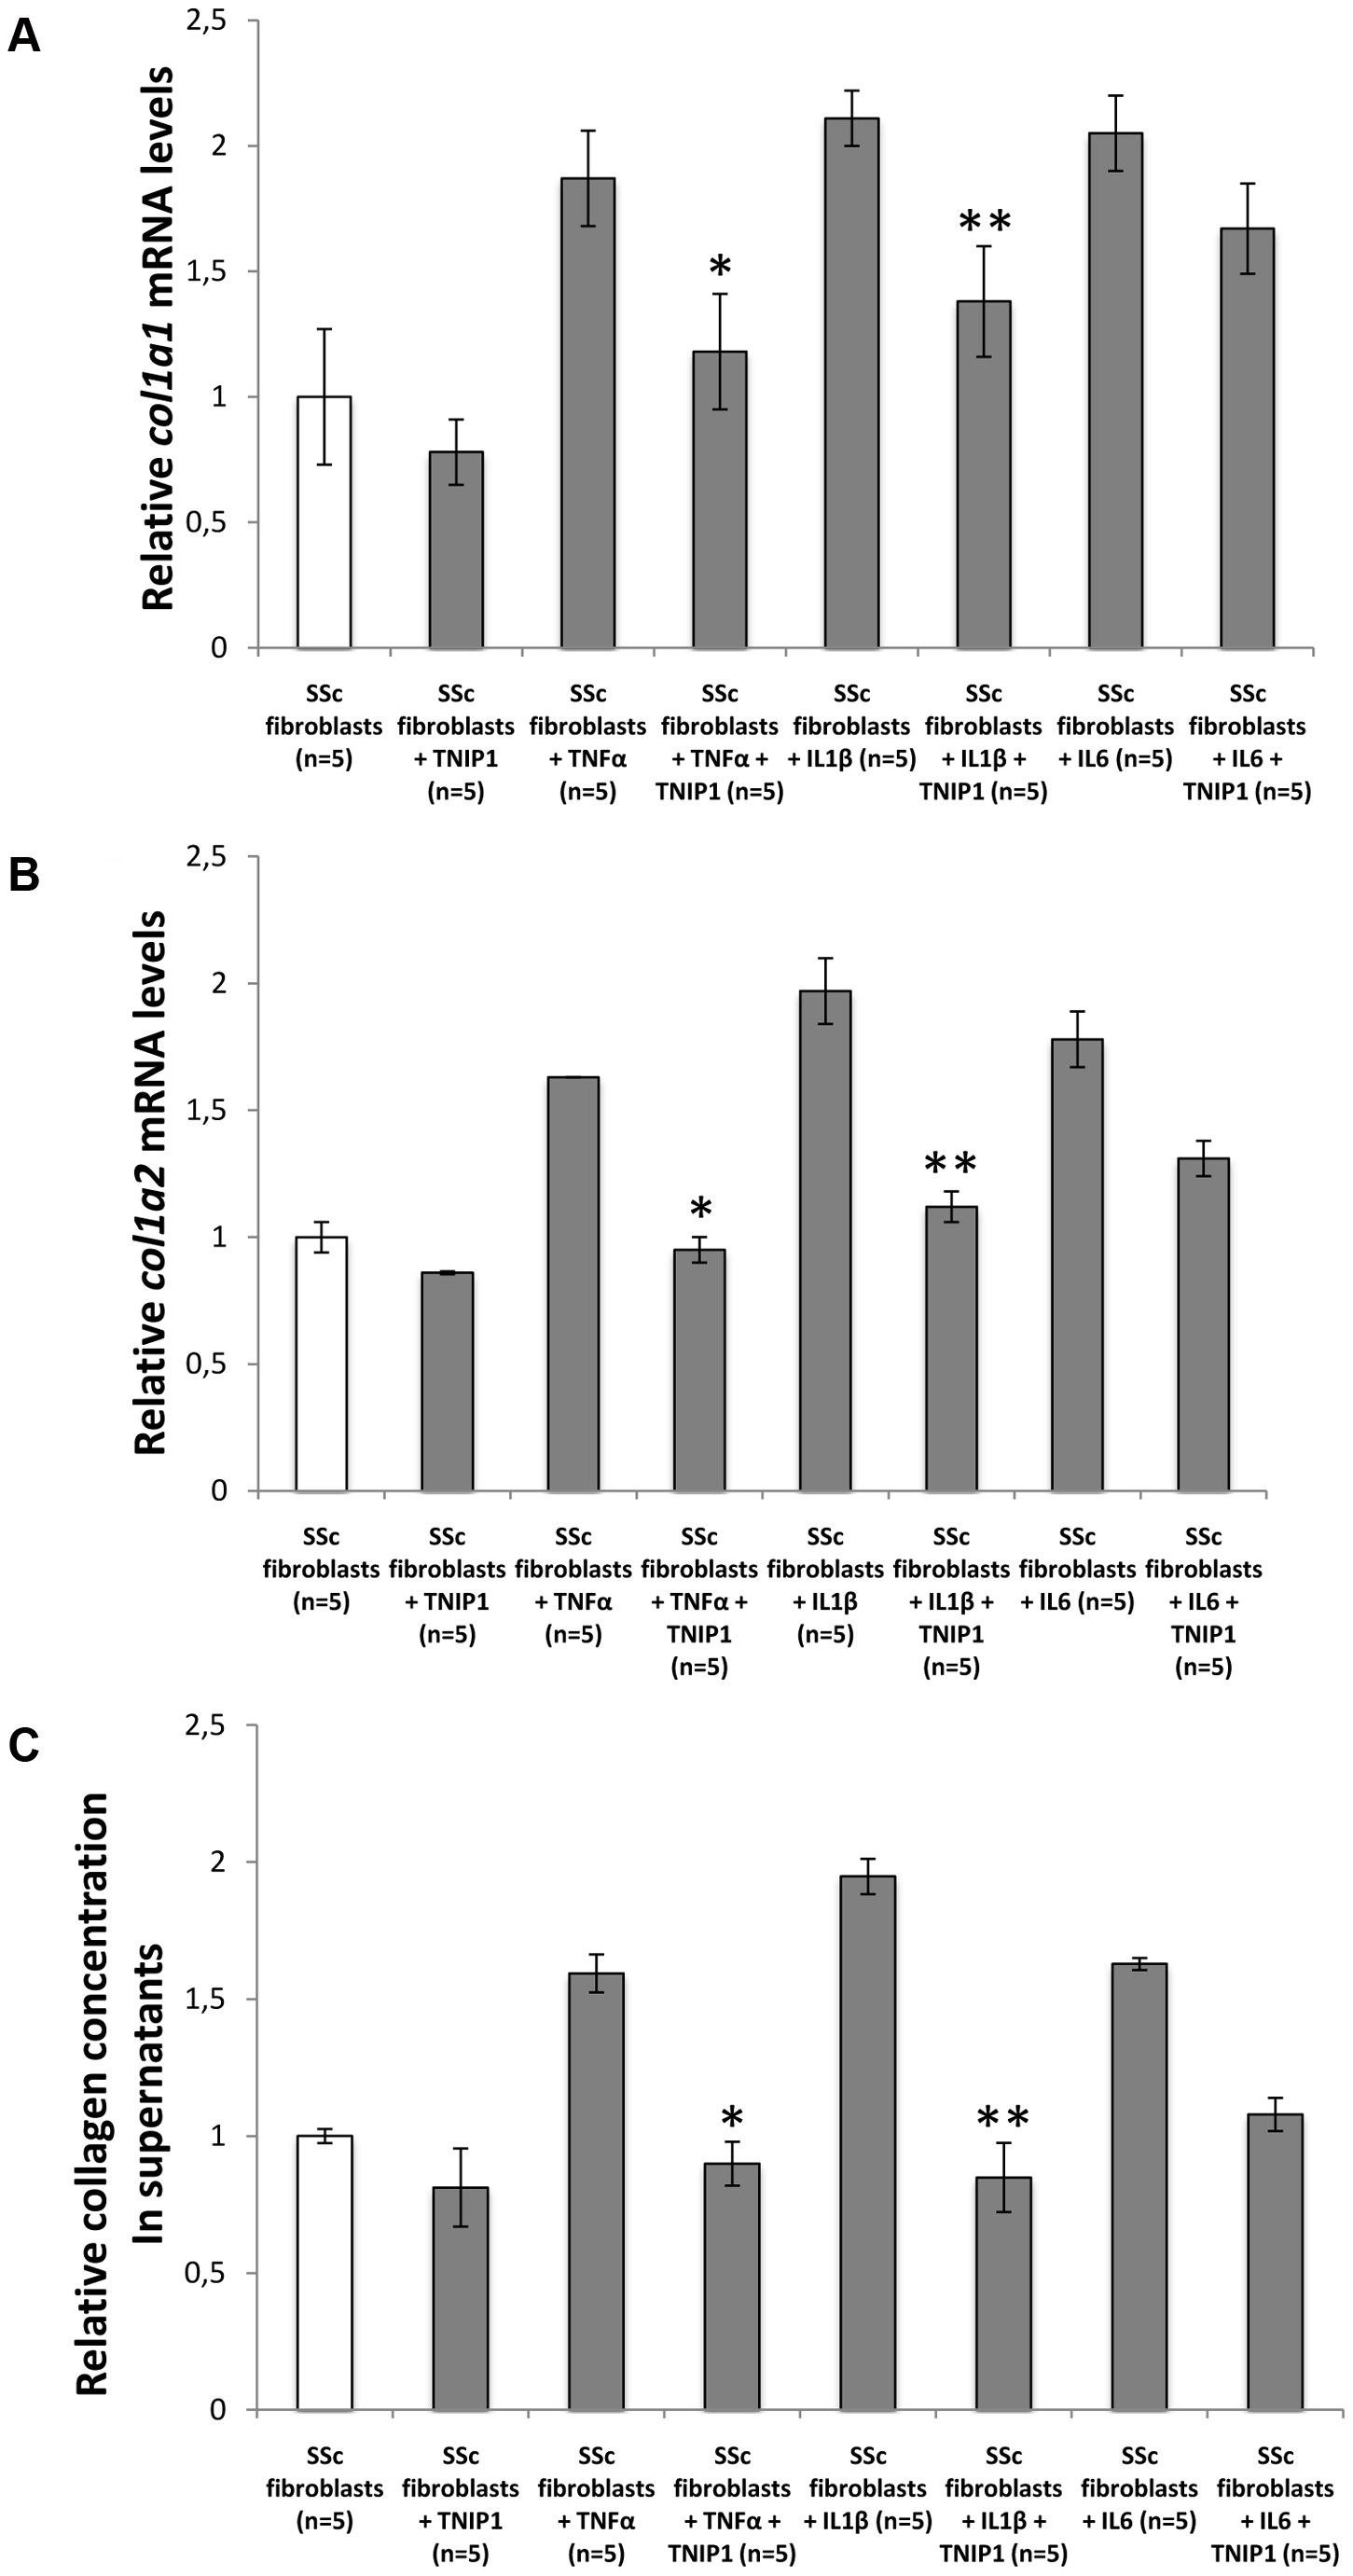 TNIP1 abrogates the profibrotic effects of proinflammatory cytokines on collagen synthesis by SSc fibroblatsts.